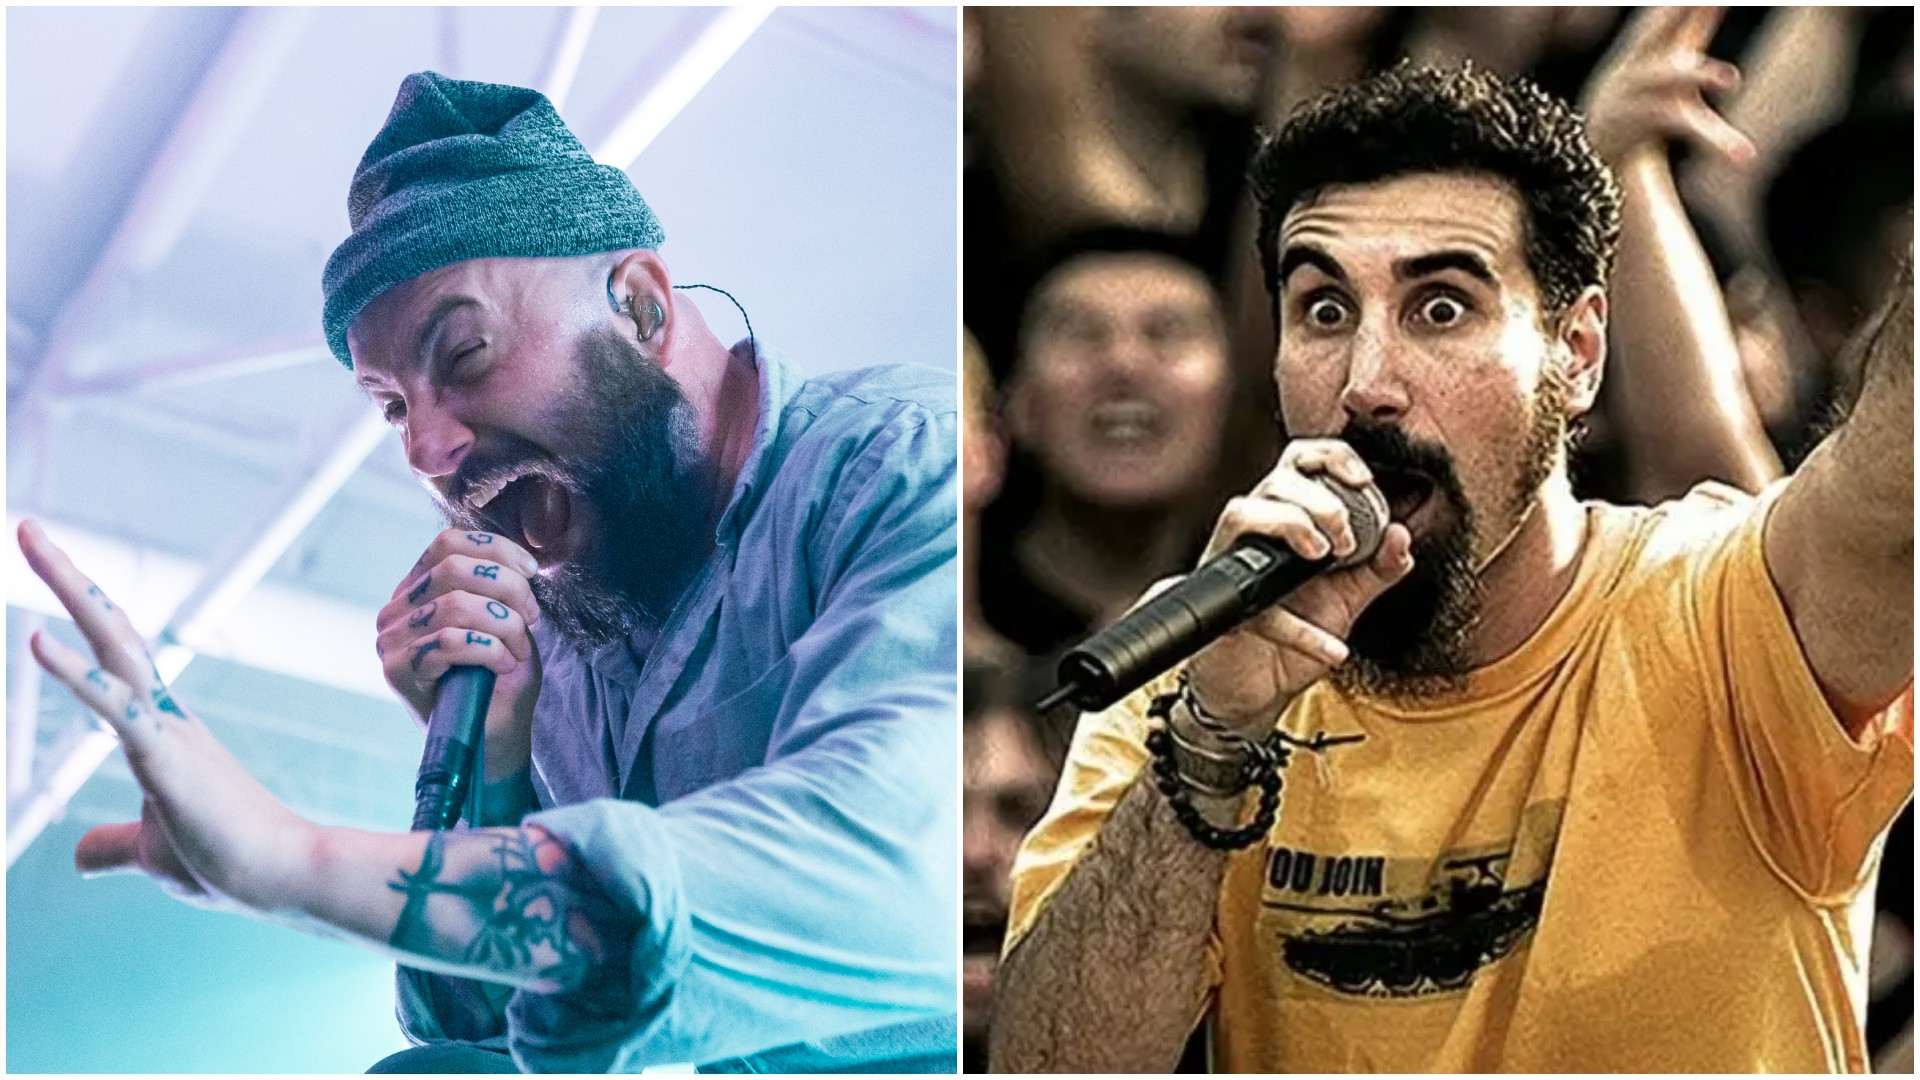 August Burns Red System Of A Down Chop Suey!